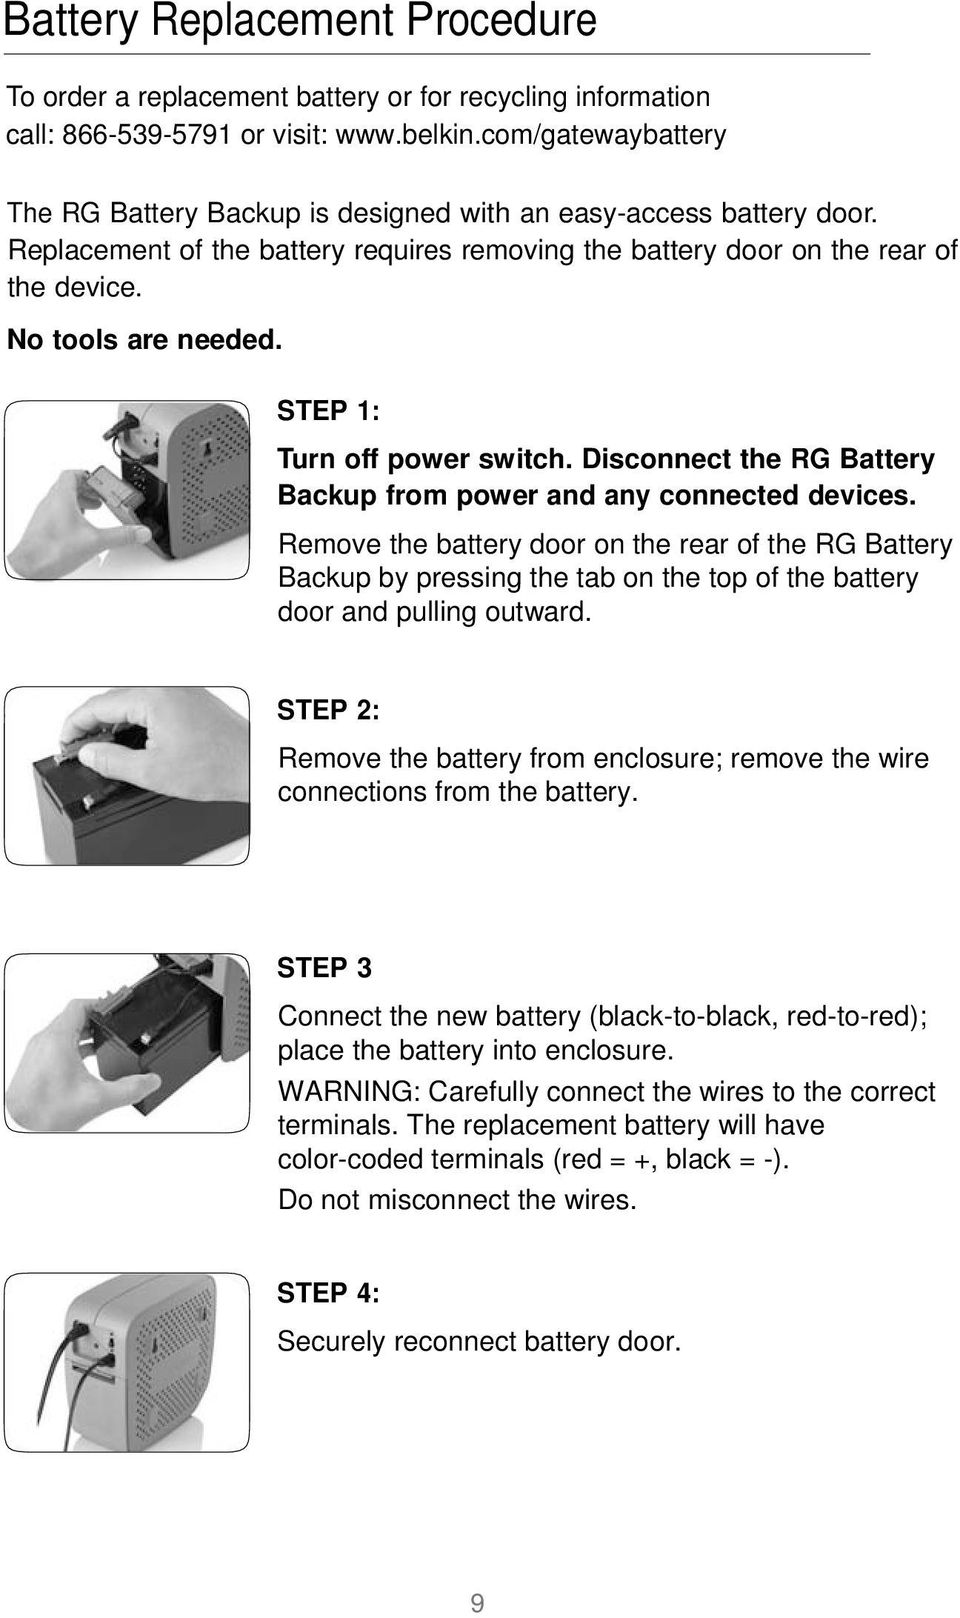 STEP 1: Turn off power switch. Disconnect the RG Battery Backup from power and any connected devices.